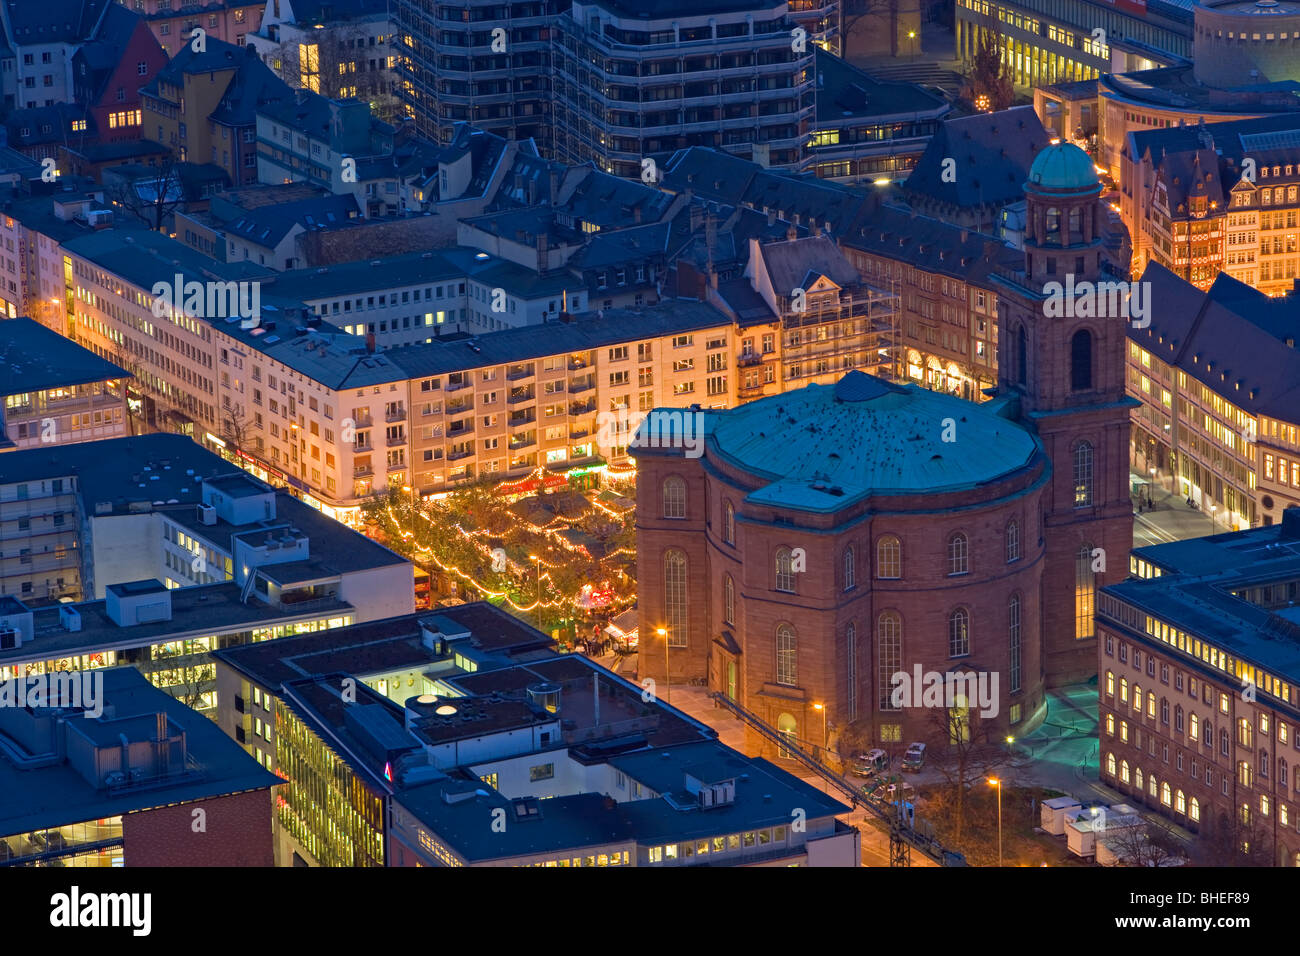 Paulskirche (Saint Paul's Church), a national historic monument and Christkindlmarkt (Christmas markets) in - Stock Image